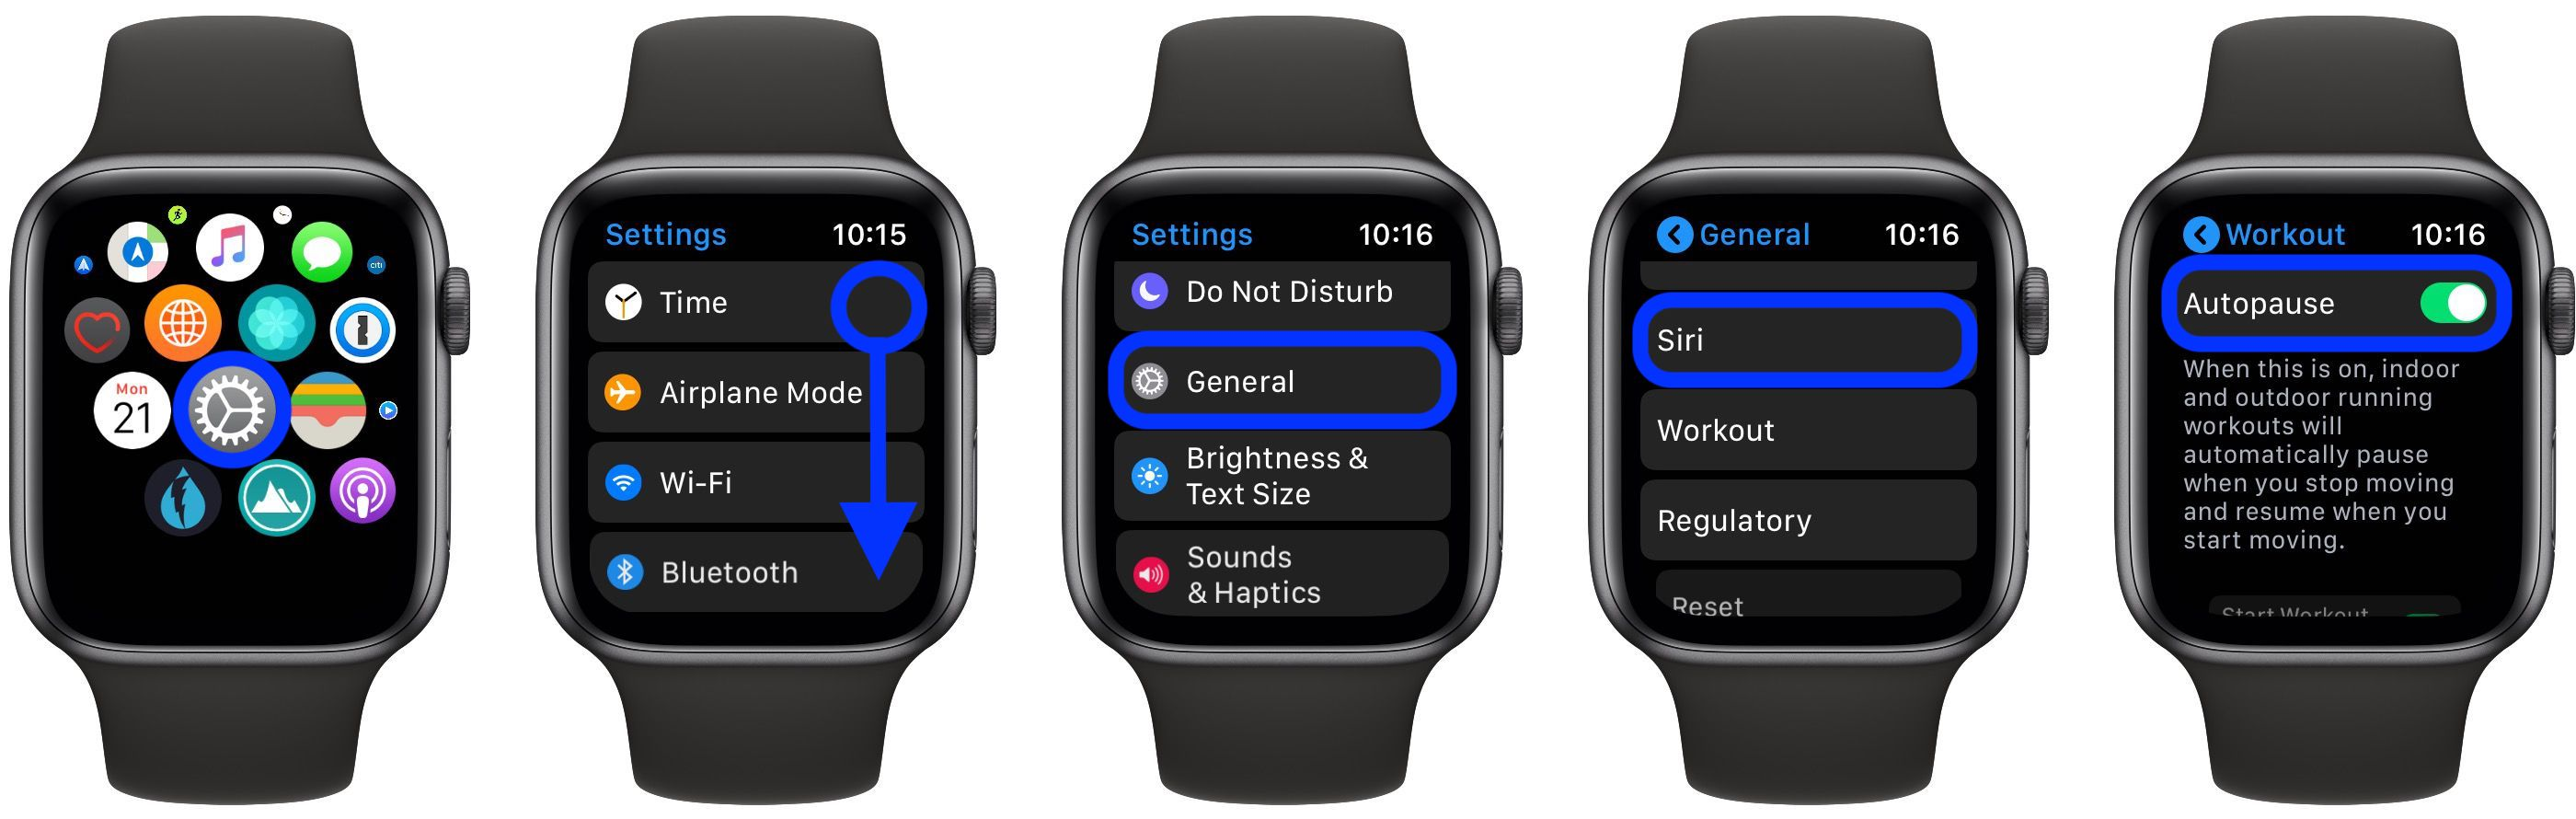 Auto Pause Apple Watch workouts